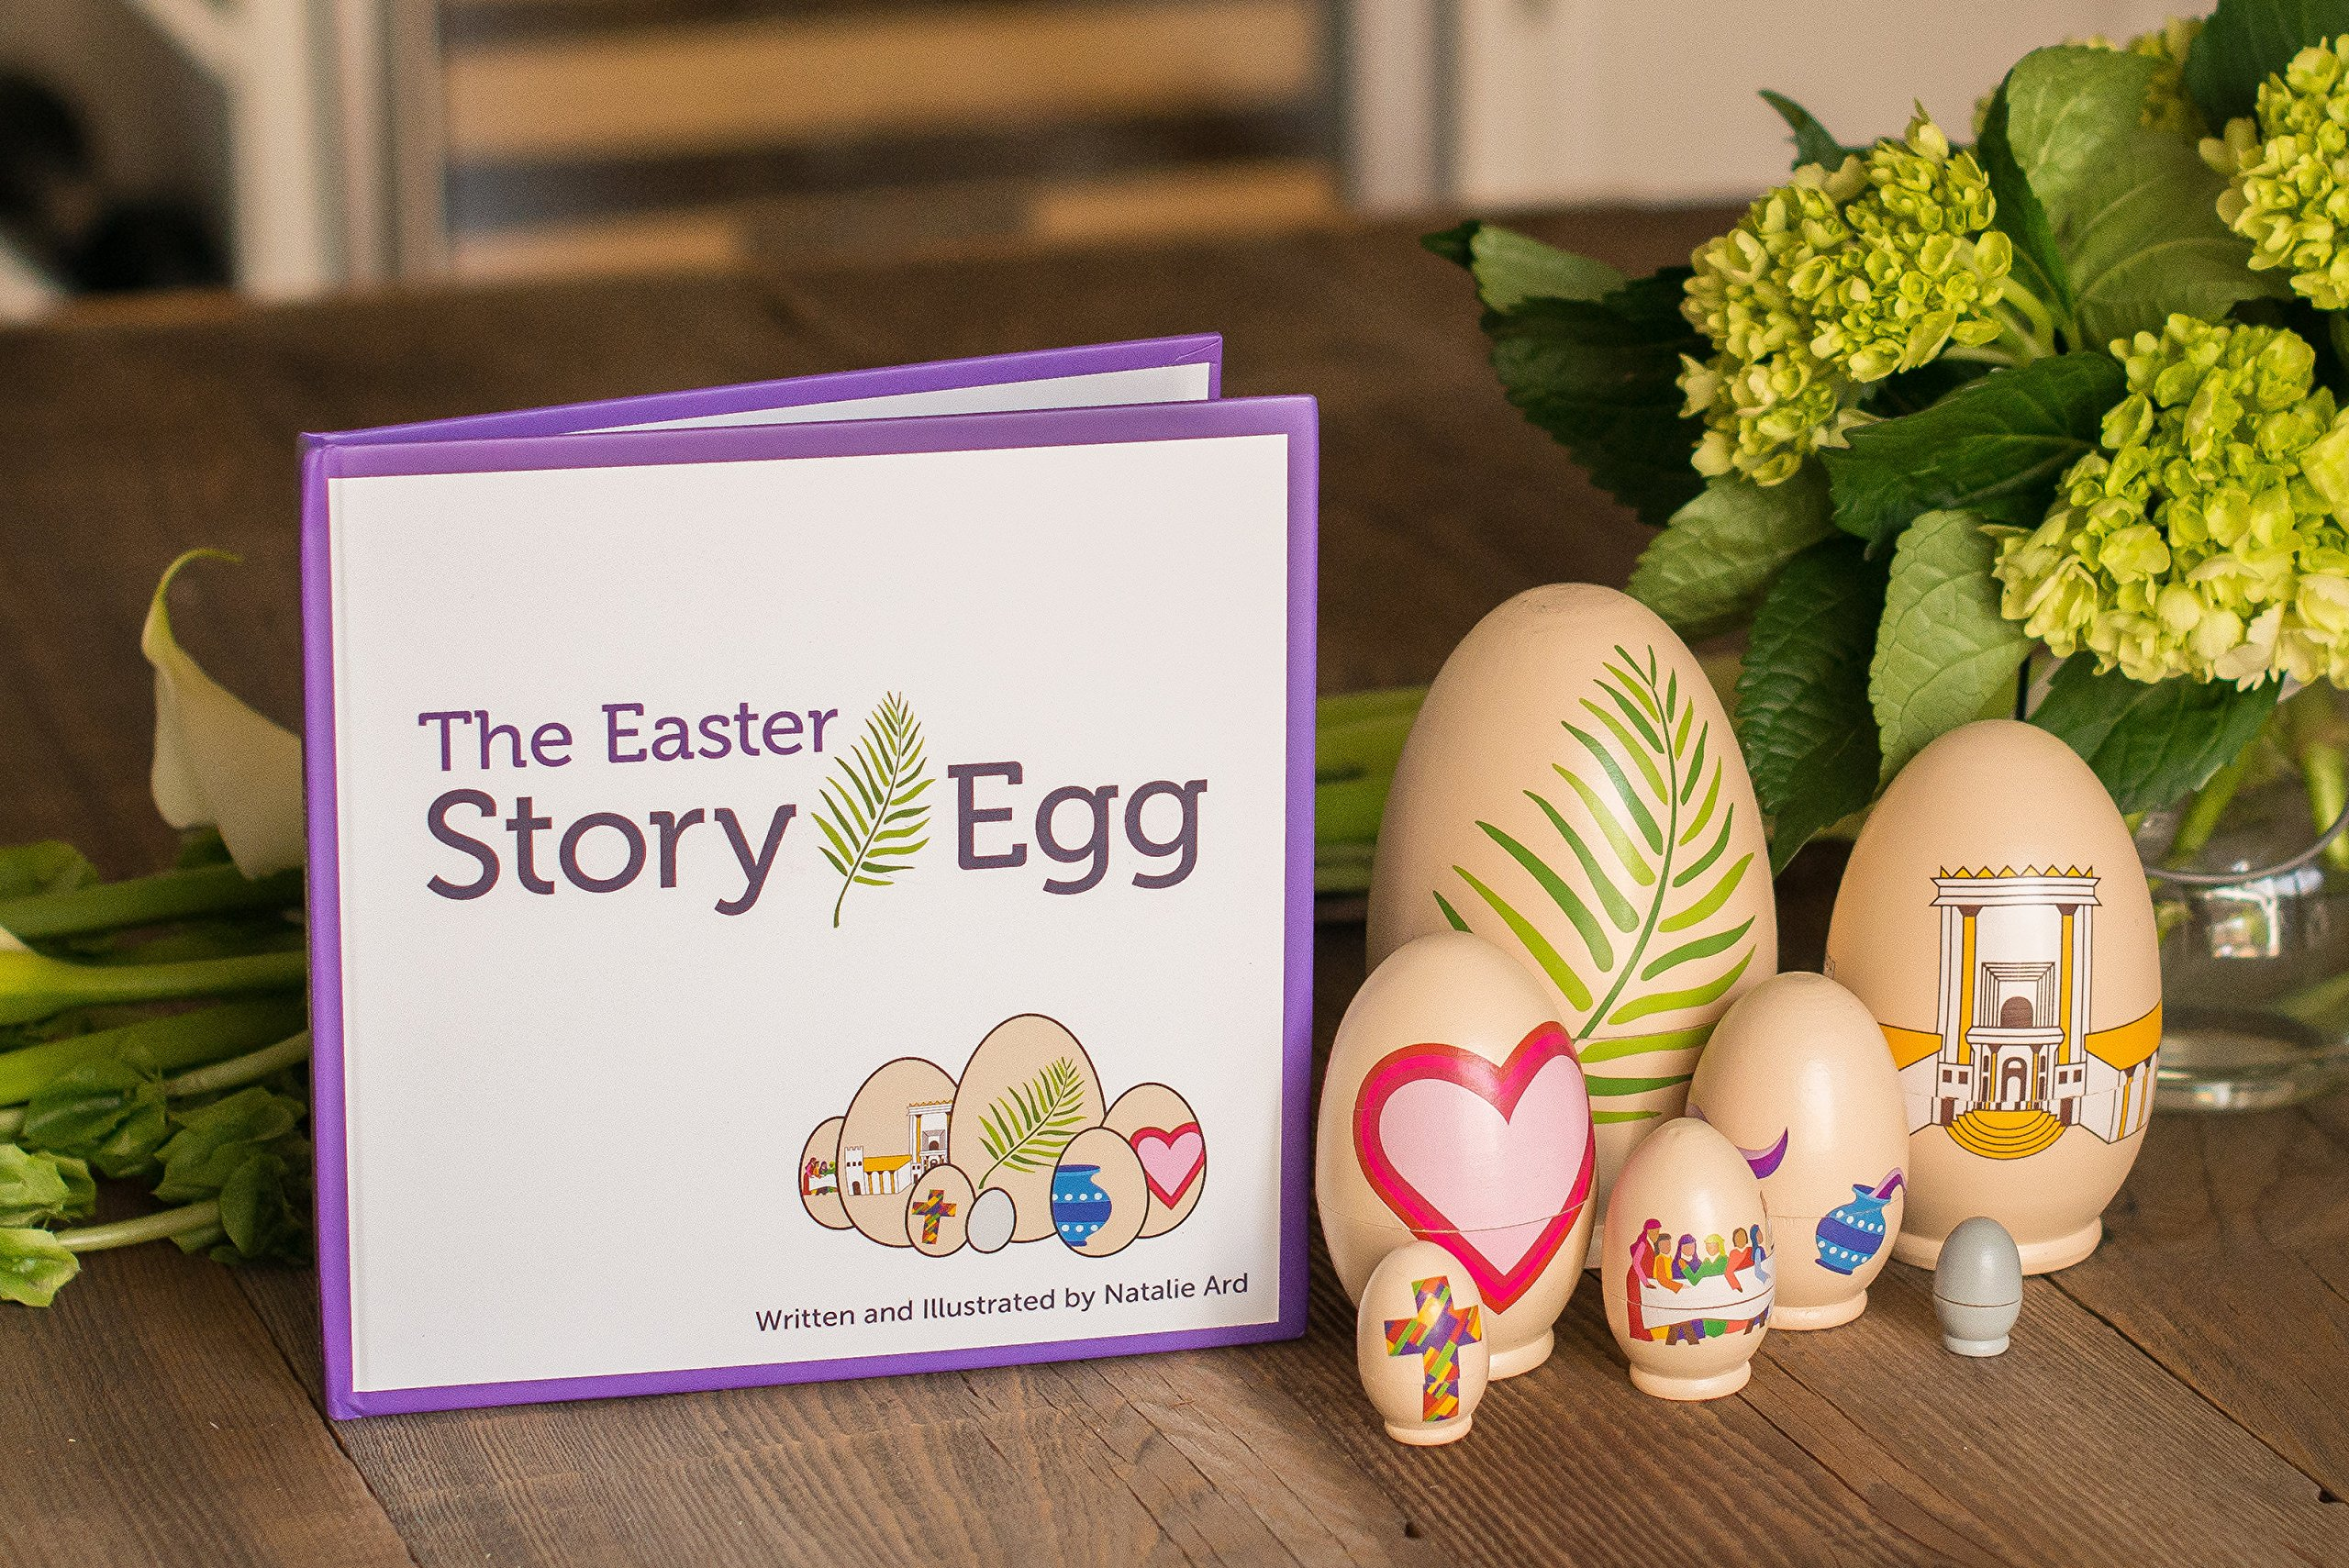 STORY EGG The Easter Colorful Nesting Toy with Resurrection Book – Great Christian or Catholic Gift for Children by STORY EGG (Image #2)